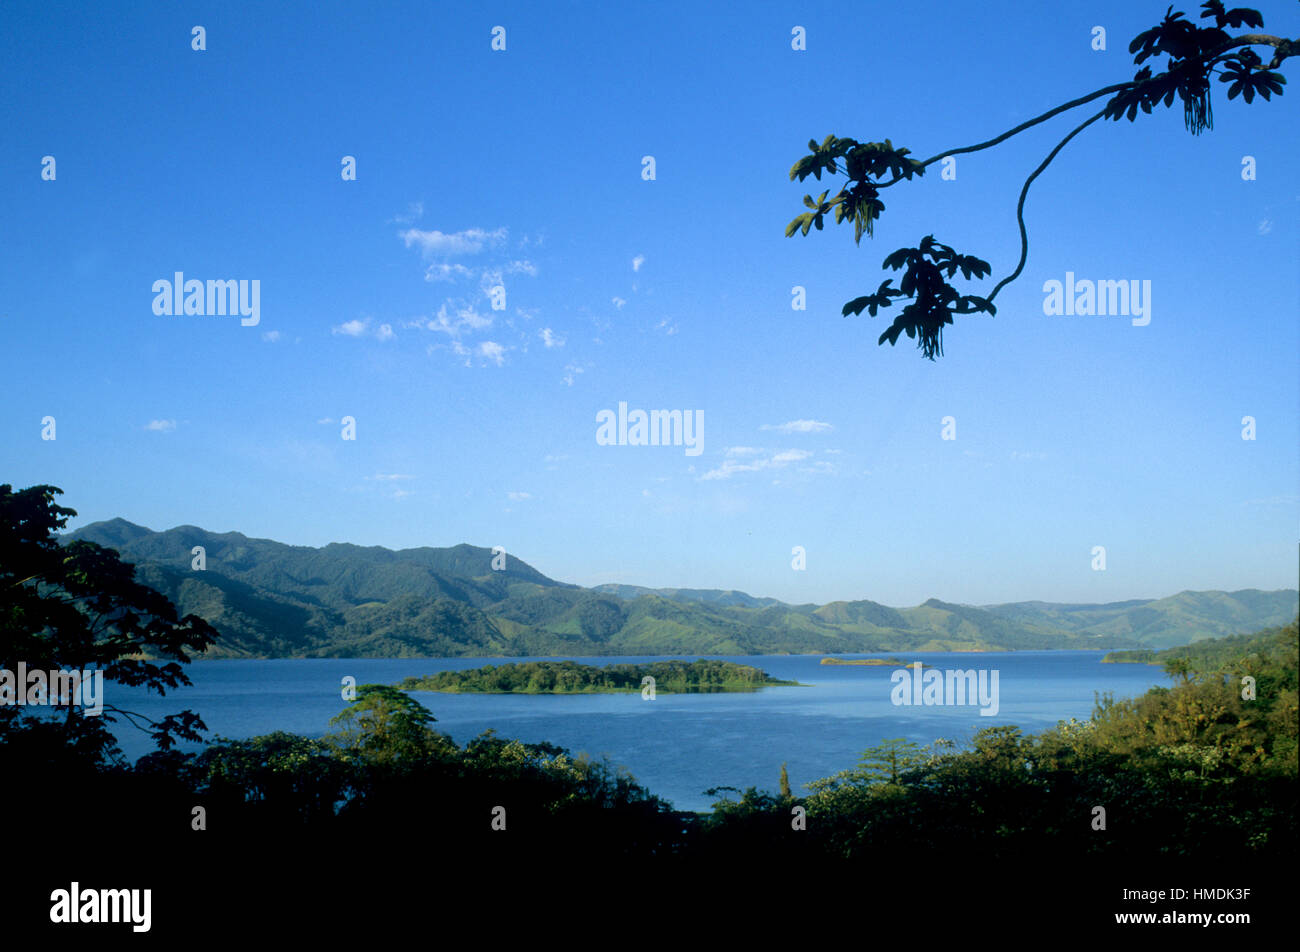 Lake Arenal, looking west. Arenal National Park, Costa Rica - Stock Image